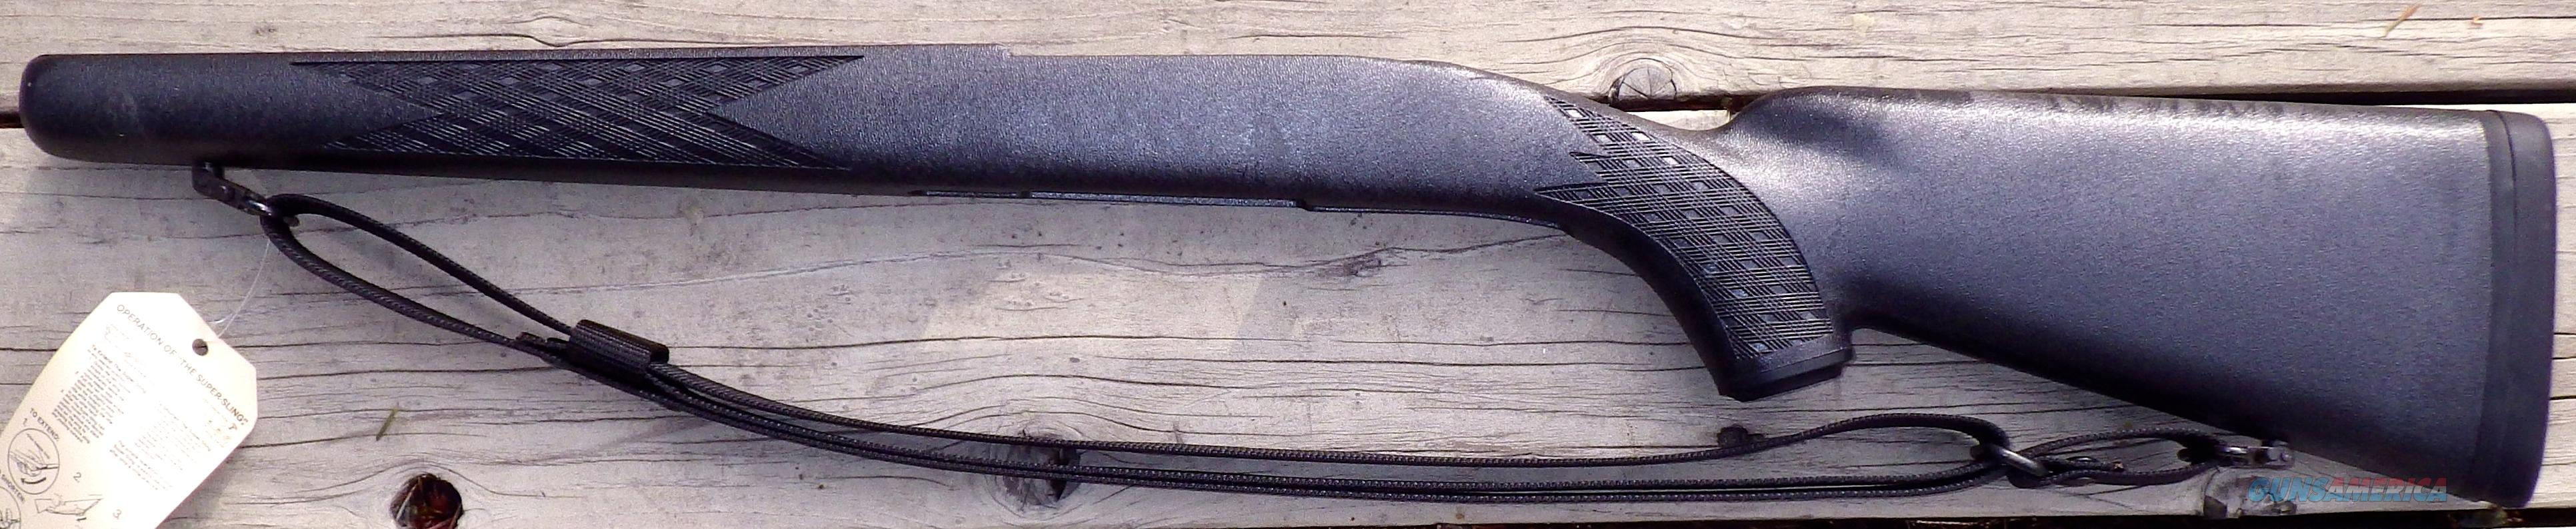 Springfield 03-A3 Ramline Syn-Tech stock with Super Sling, new  Non-Guns > Gunstocks, Grips & Wood